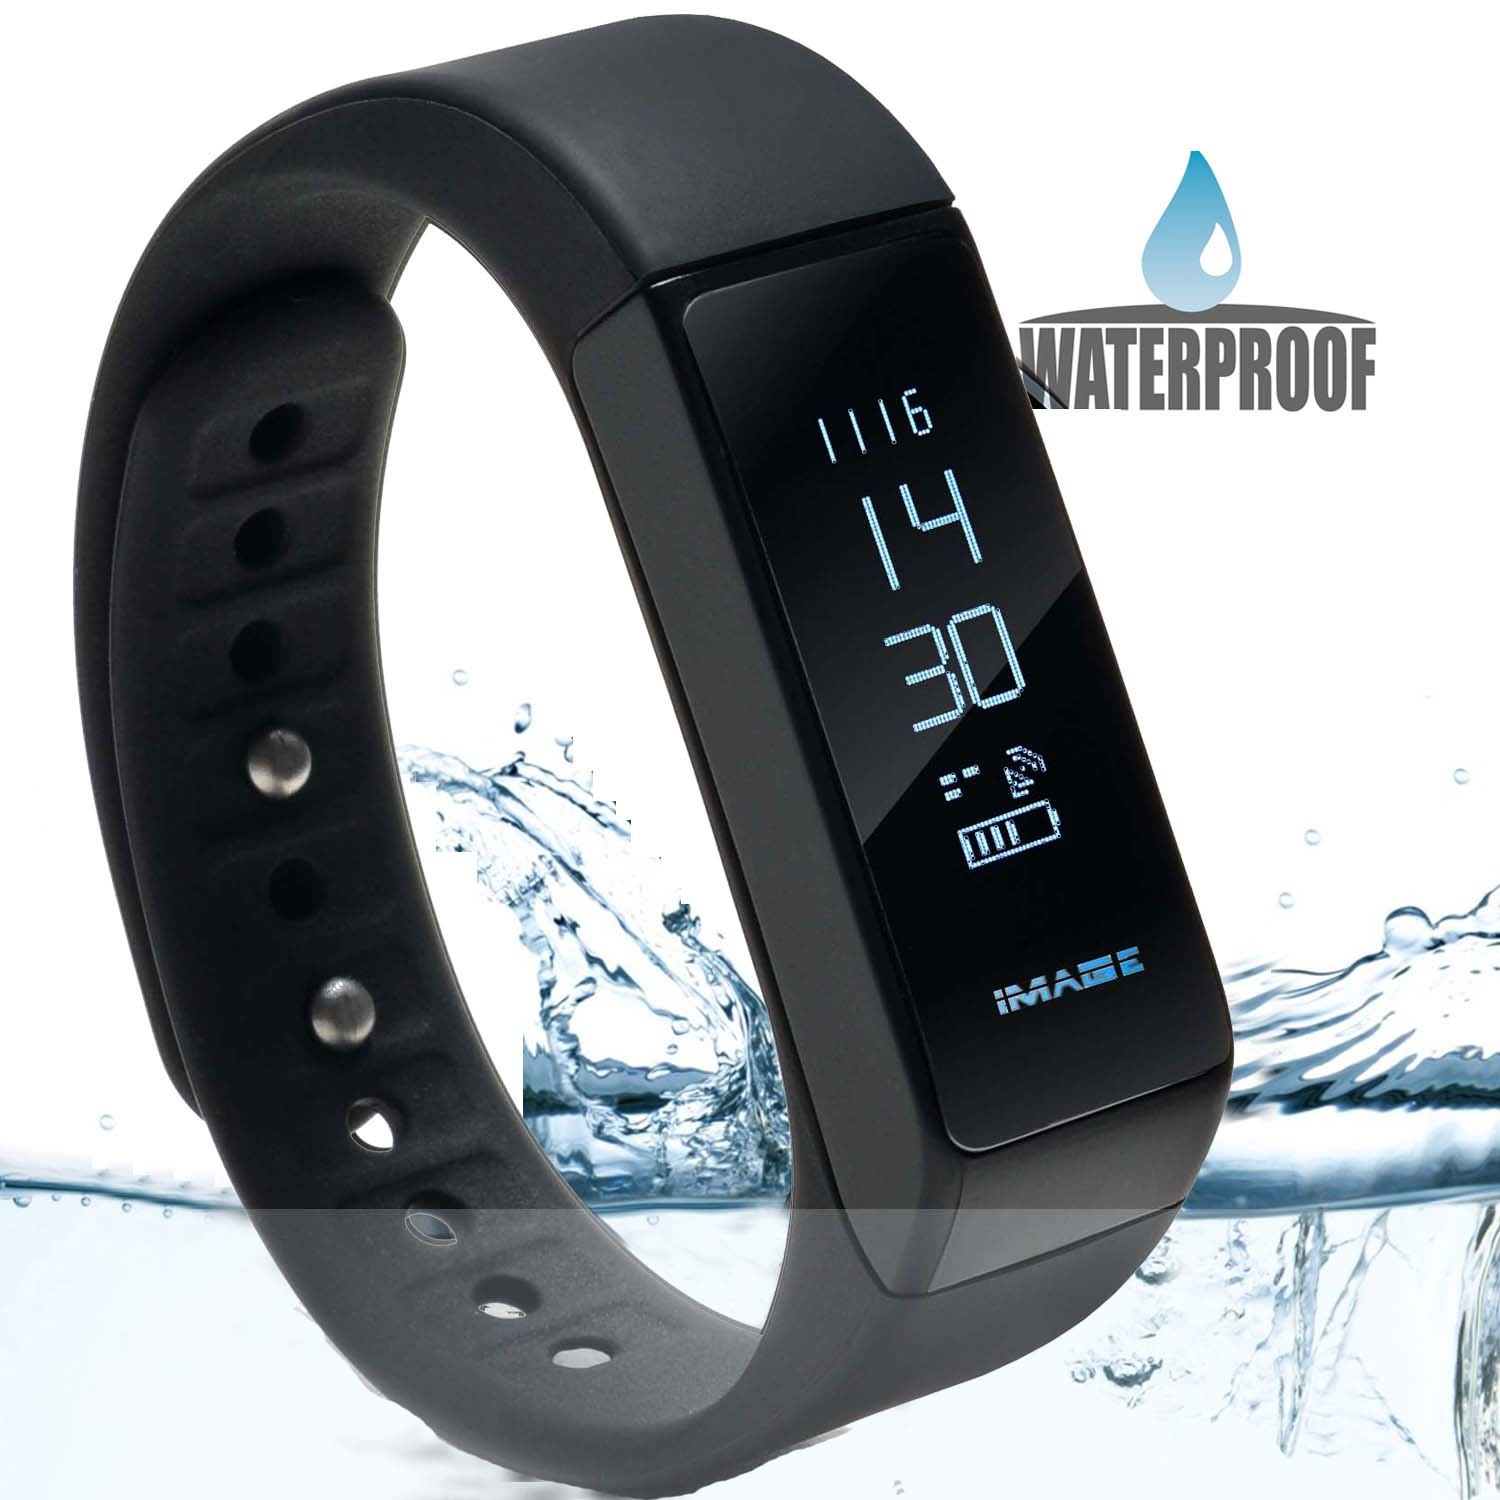 smartwatches android all agent core best from smart dual wifi selling watches phones the independent watch bluetooth cell mobile product phone